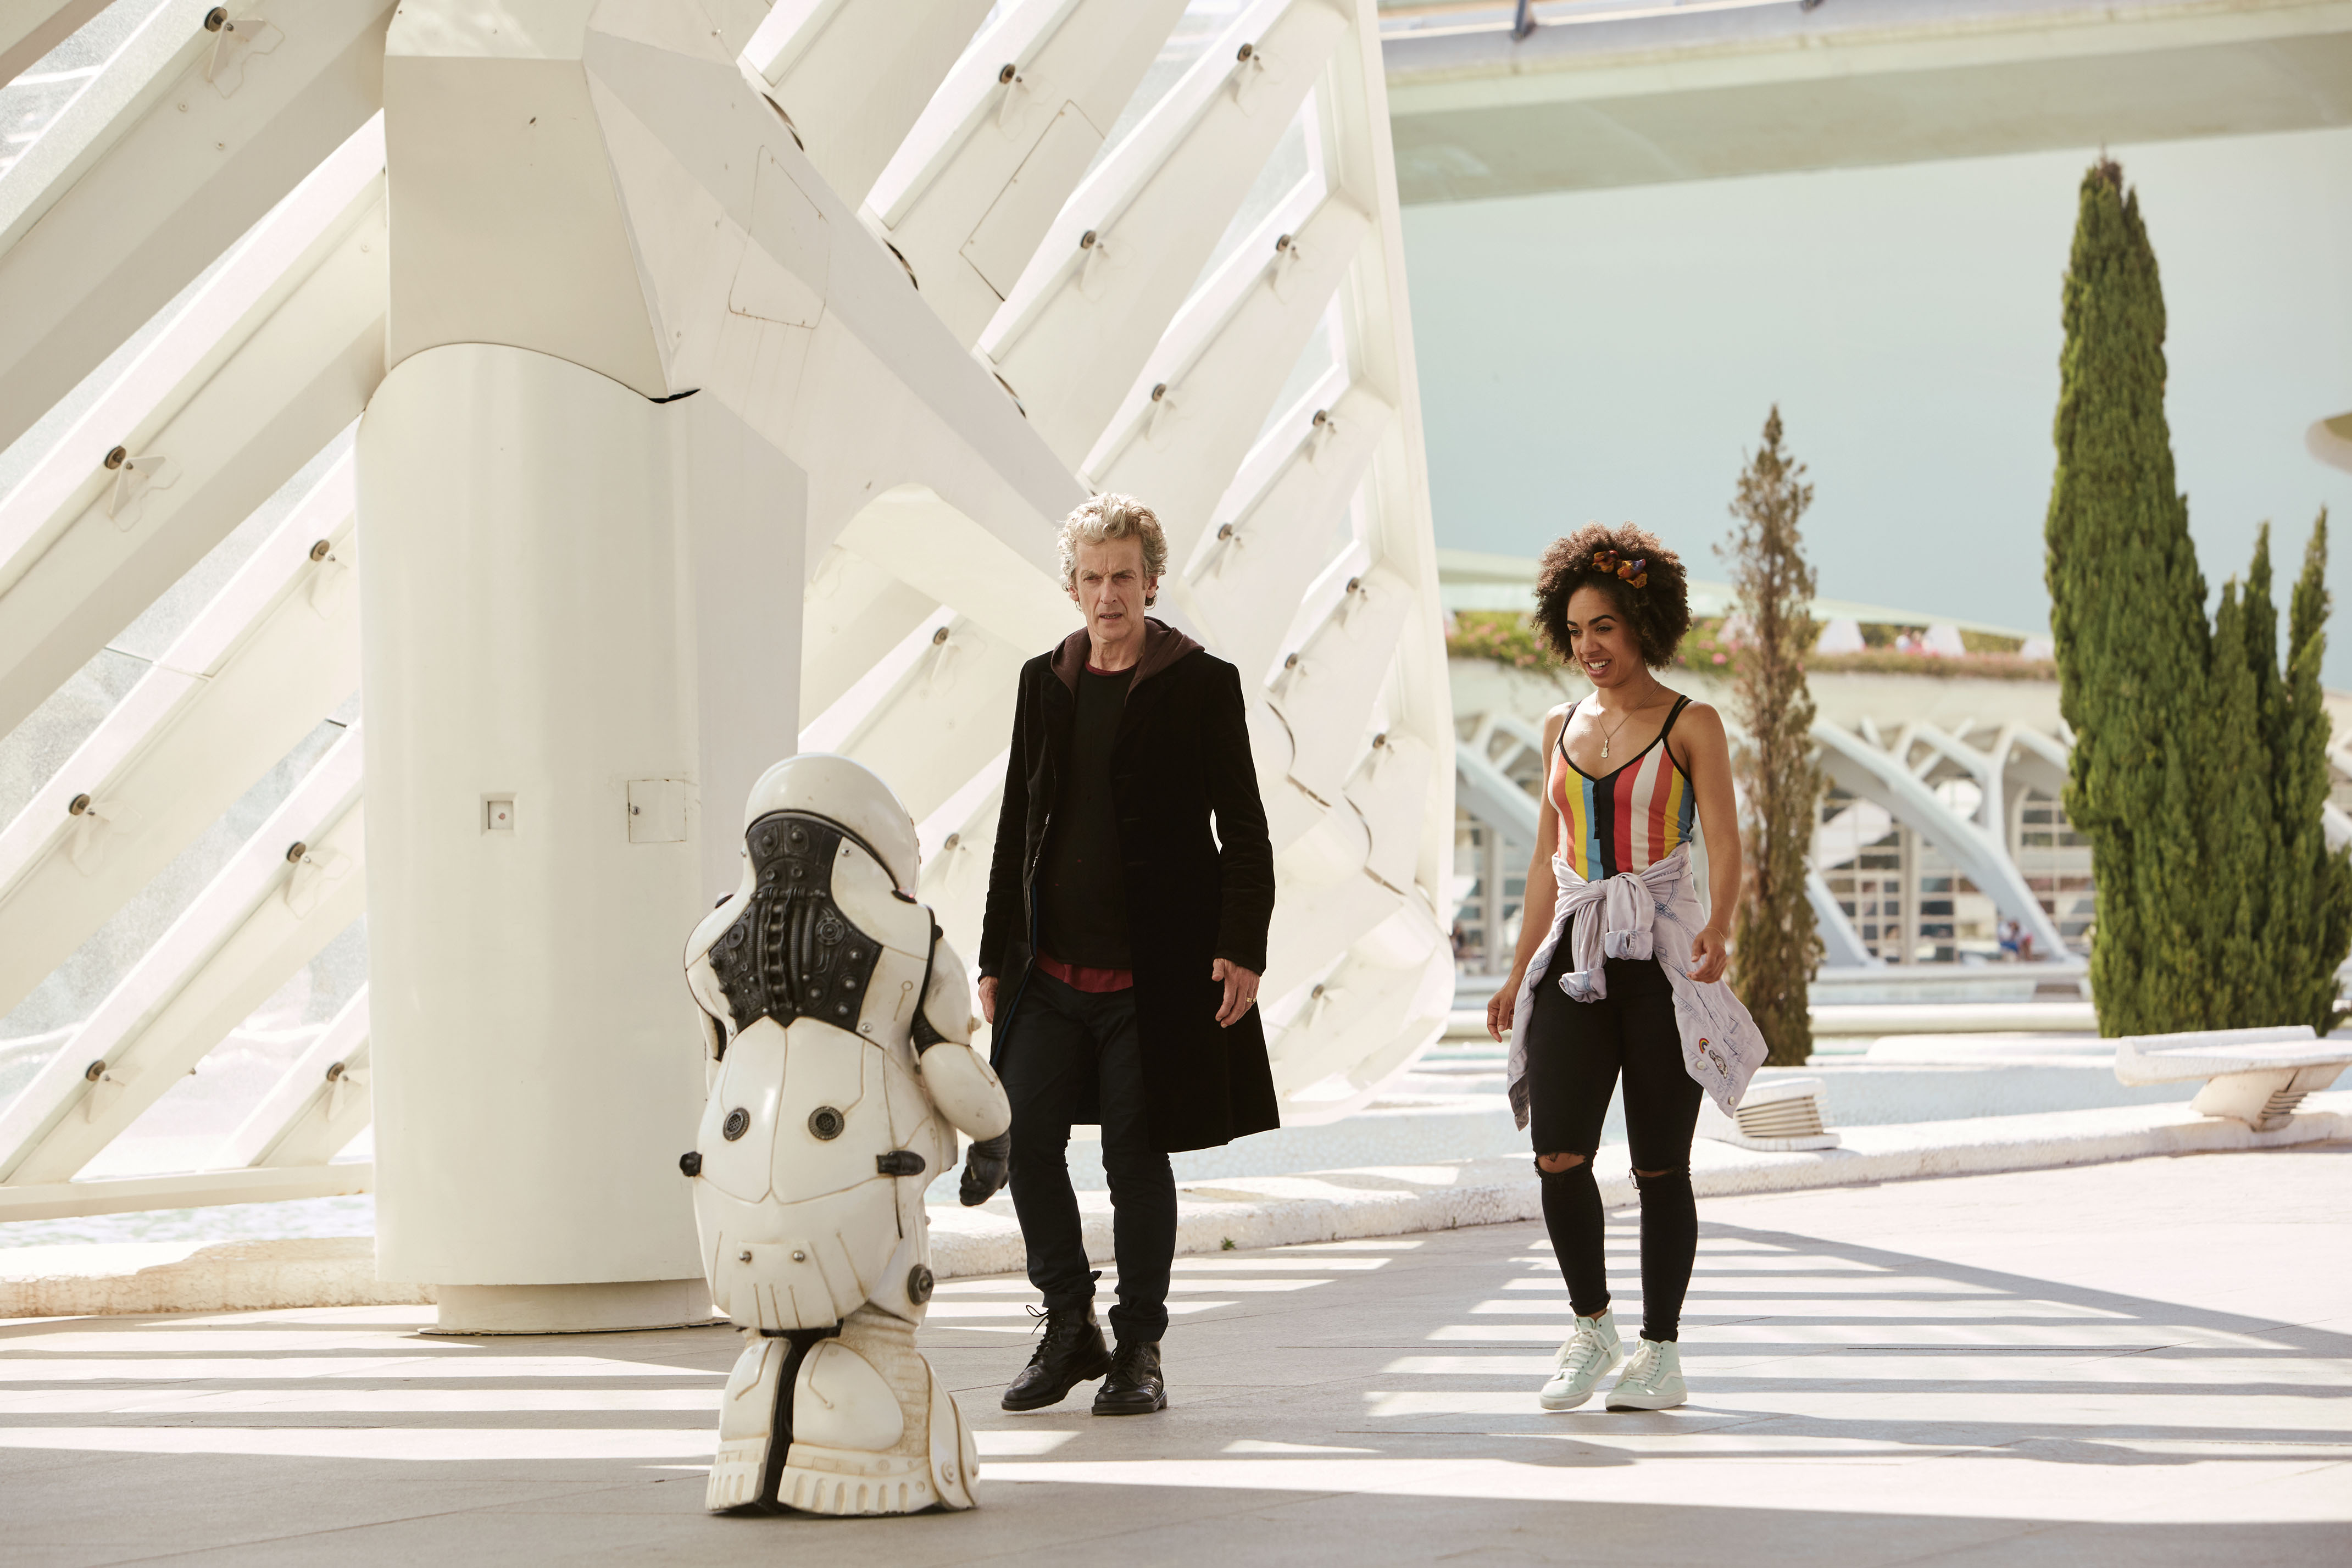 Emoji Monsters Invade Doctor Who in Upcoming New Episode